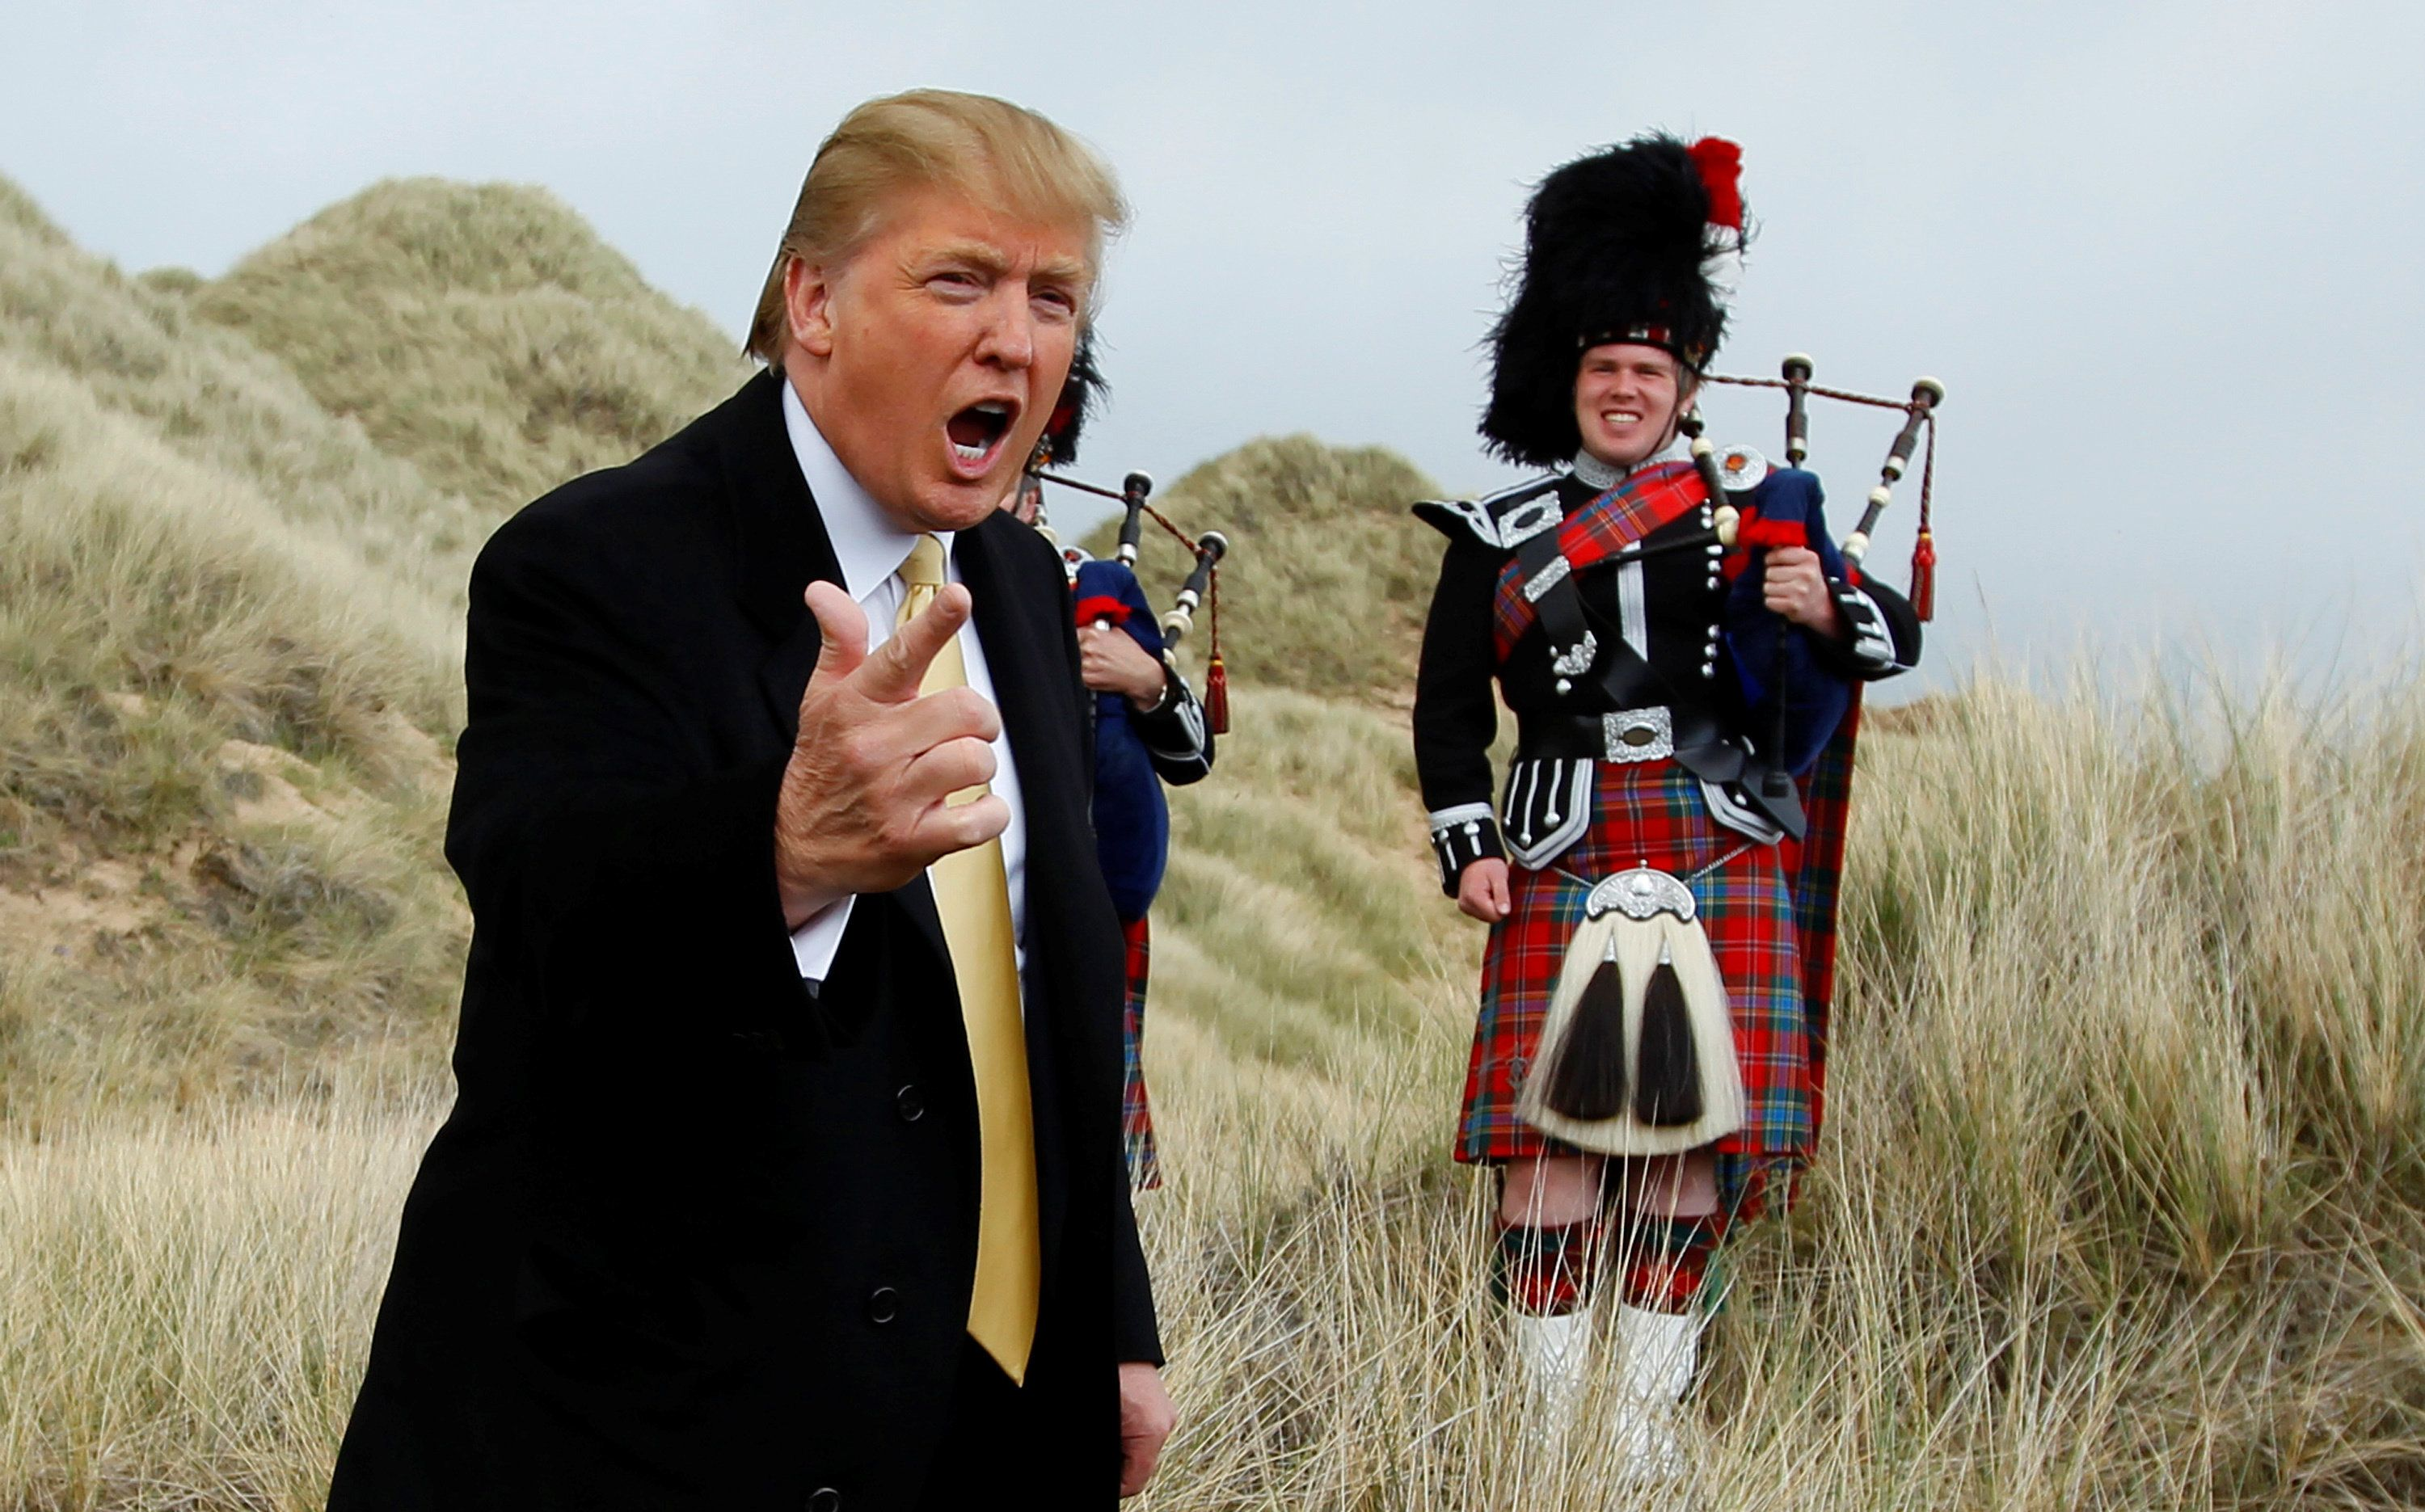 If Donald Trump Comes To Golf, Scotland Wants Britain To Pay His Greens Fees